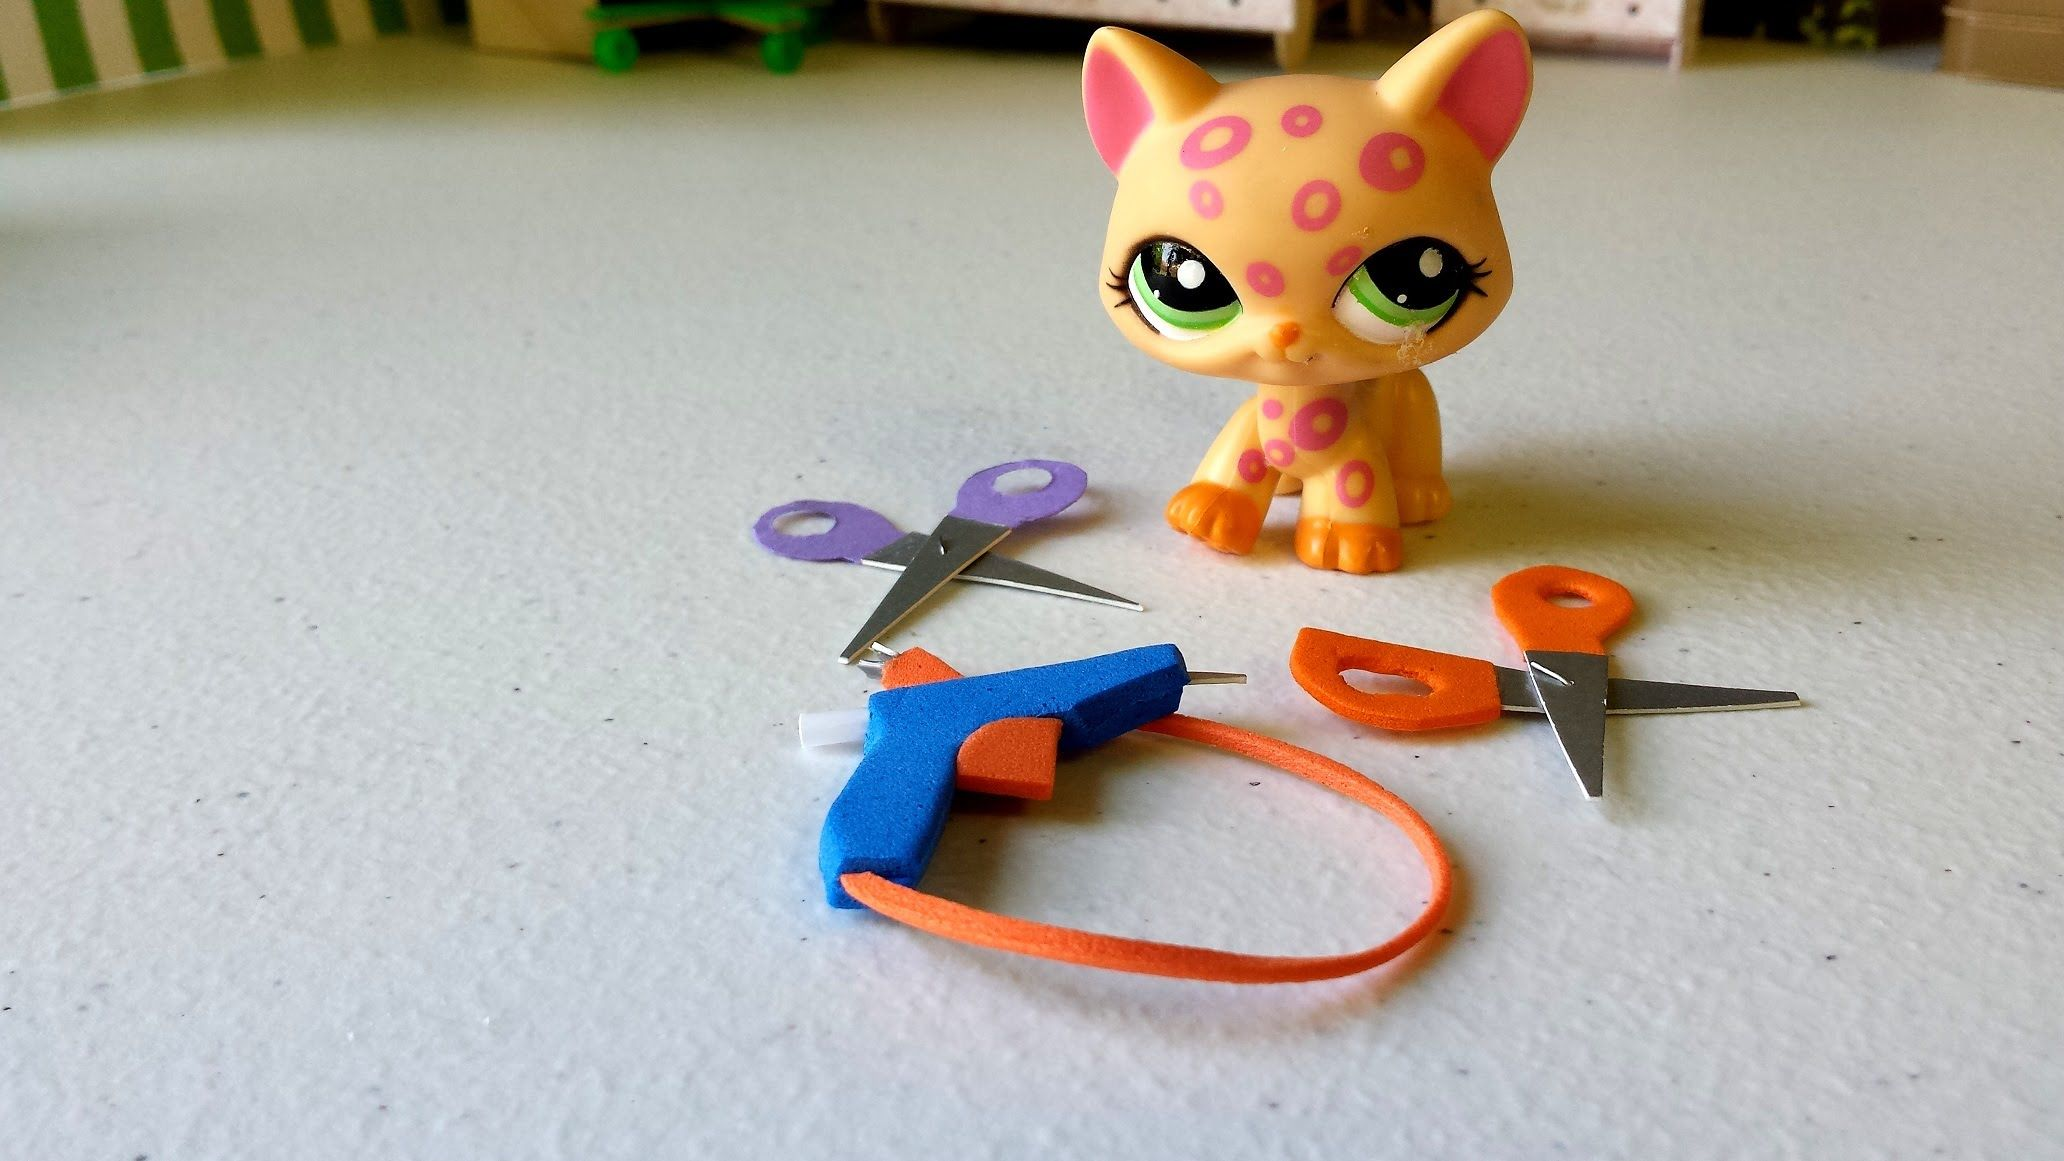 How to make tiny craft supplies hot glue gun scissors for Hot glue guns for crafts